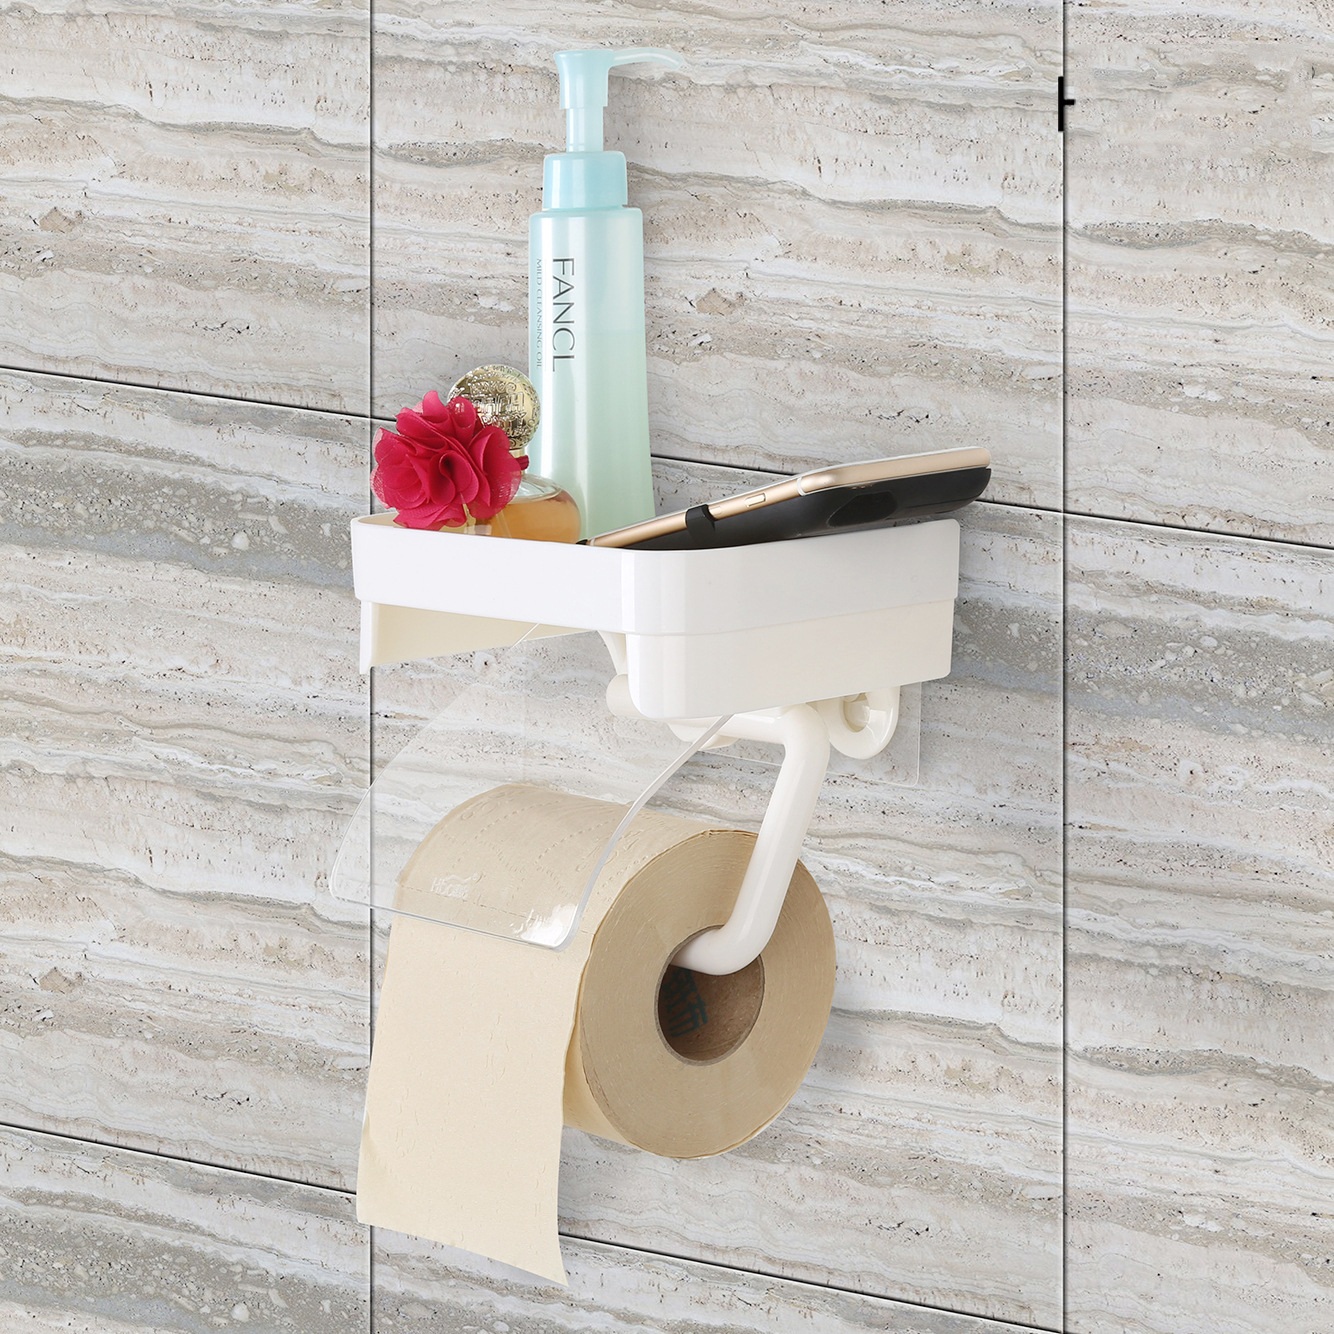 Honana Sucker Wall Mounted Toilet Paper Holder Bathroom Fixture Plastic Roll Paper Holders With Mobile Phone Storage Rack